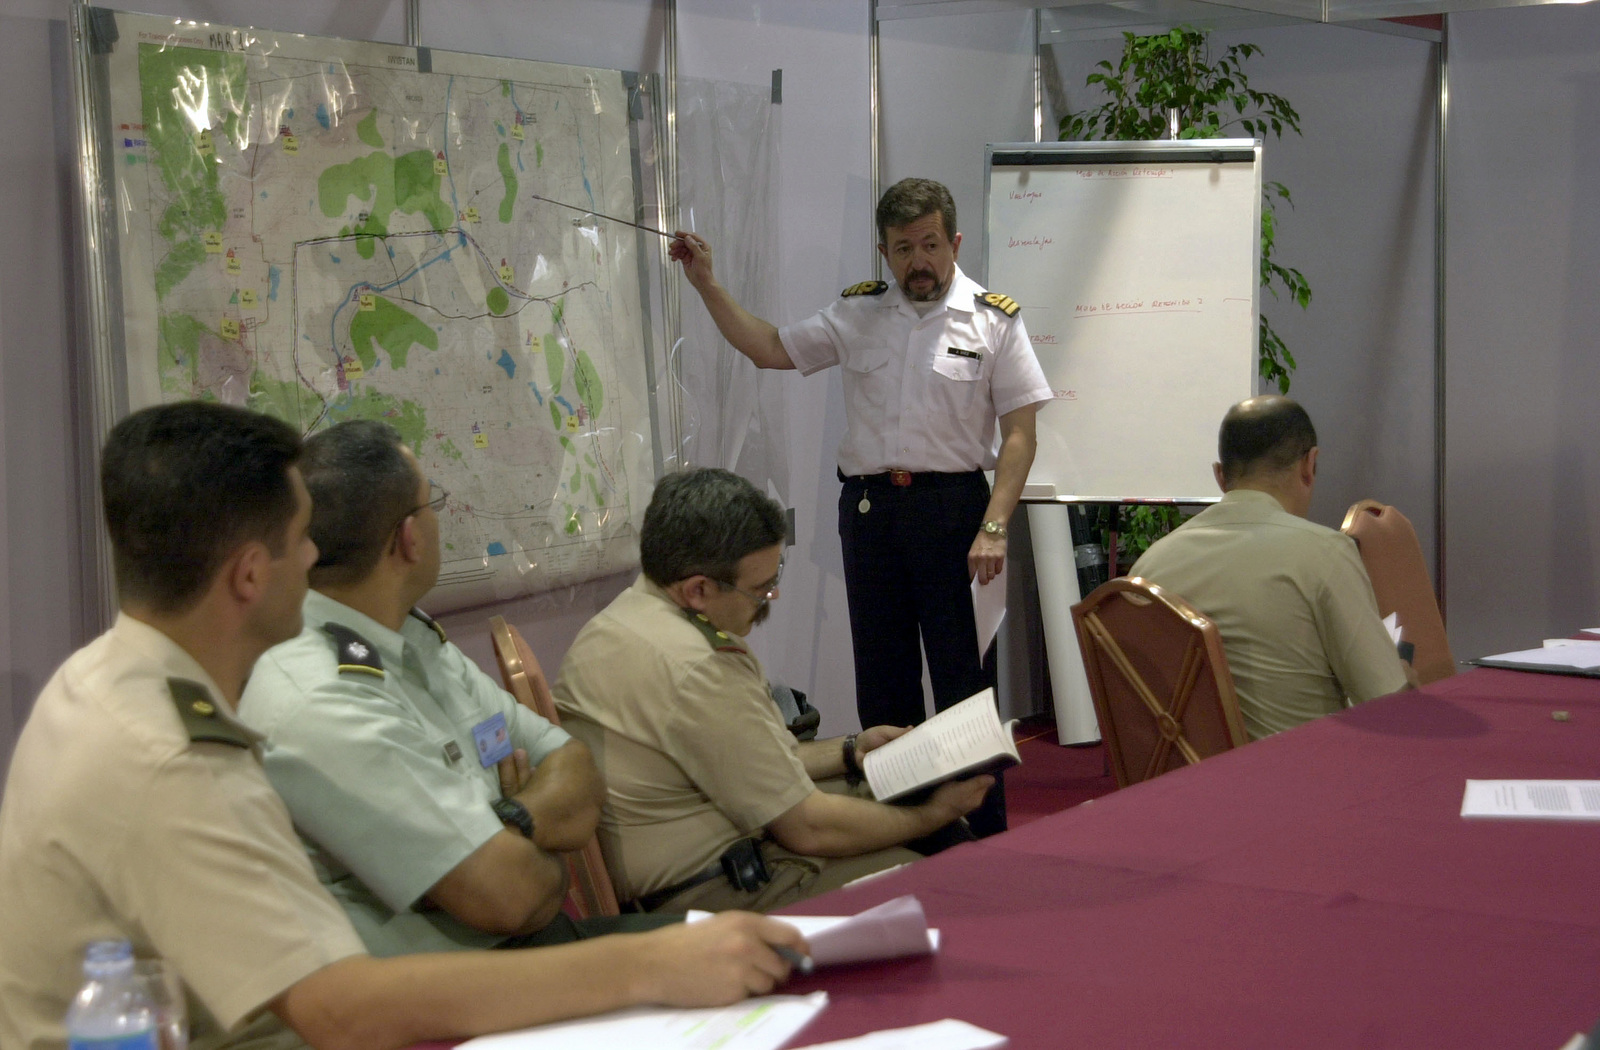 Argentine Republic Navy Captain (CPT) Juan Carlos Diez (standing background), uses a map to brief Joint Task Force Commanders during the Mid-Planning Conference for Peacekeeping Operations South 03 (PKO South 03), held at the Sheraton Hotel, Buenos Aires, Argentina (ARG)